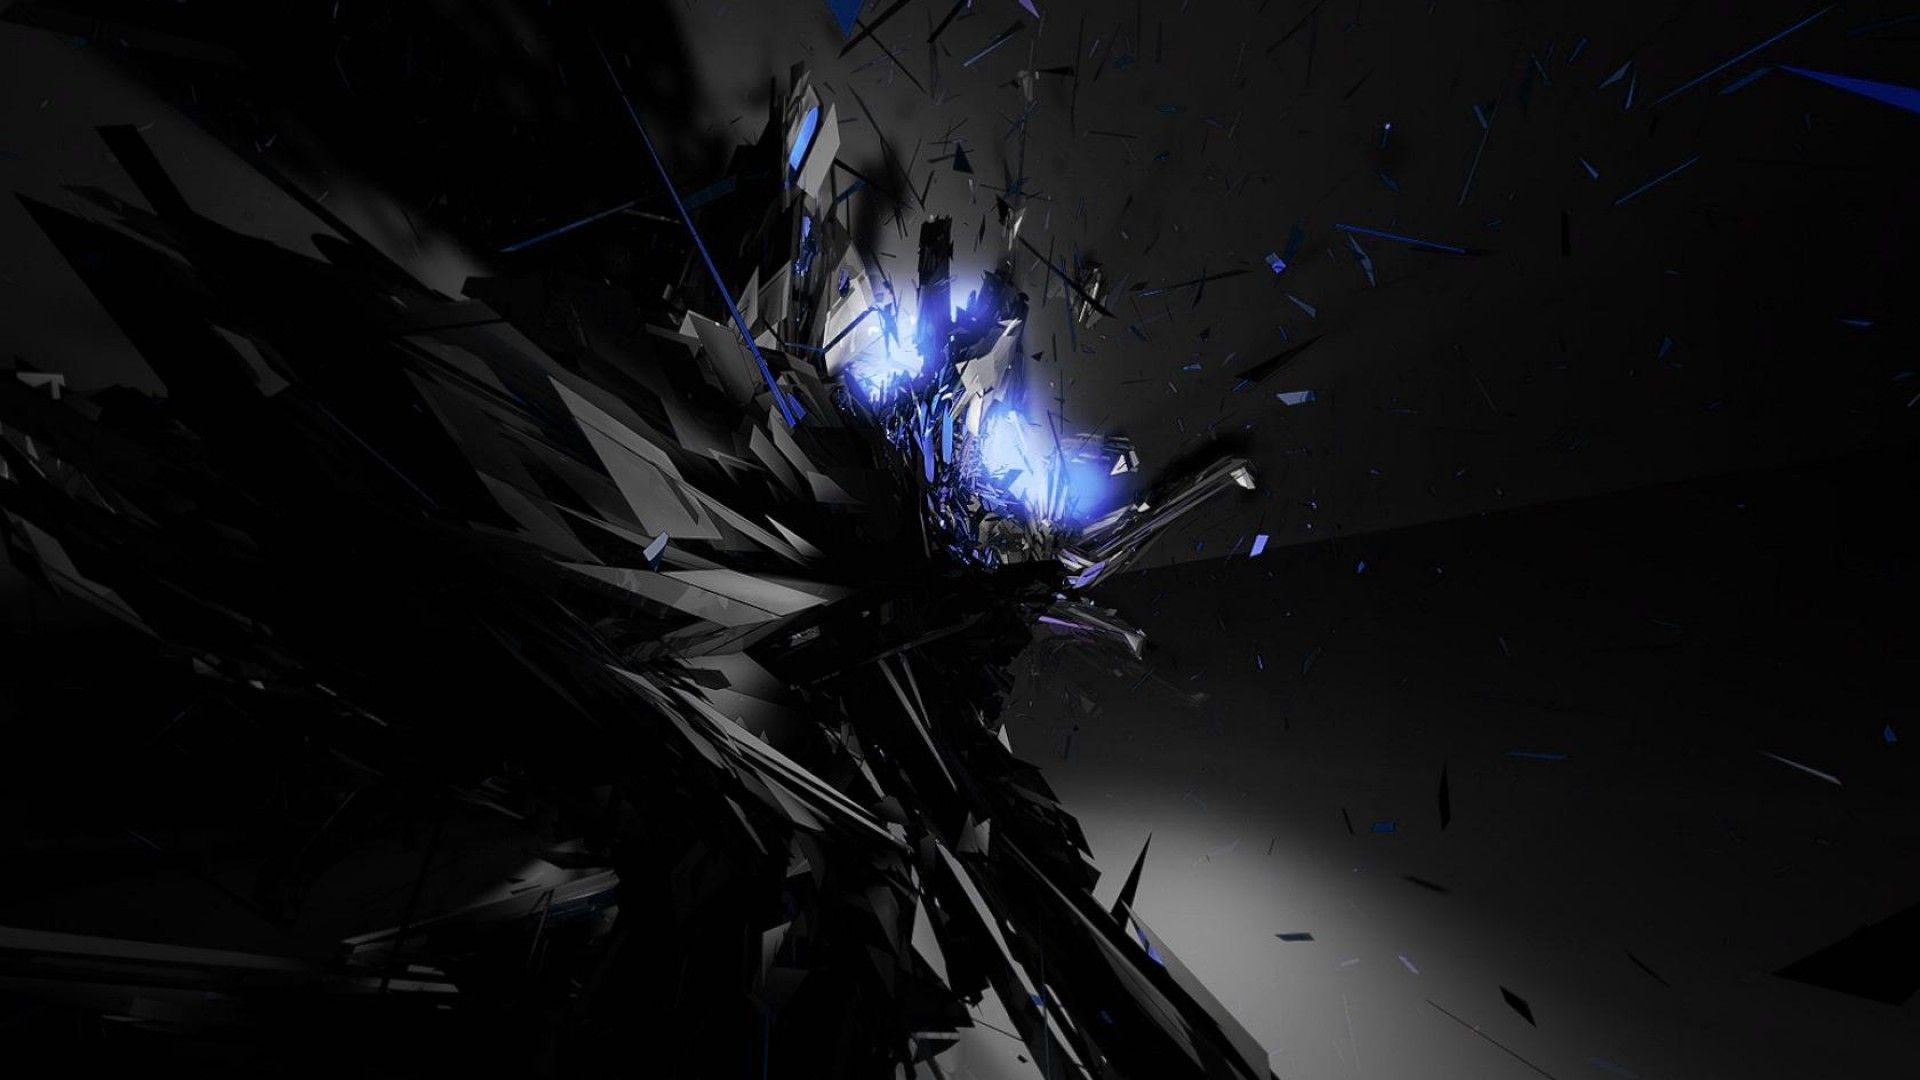 Res: 1920x1080, Android Wallpapers New Abstract Darkness Abstract Dark Wallpaper